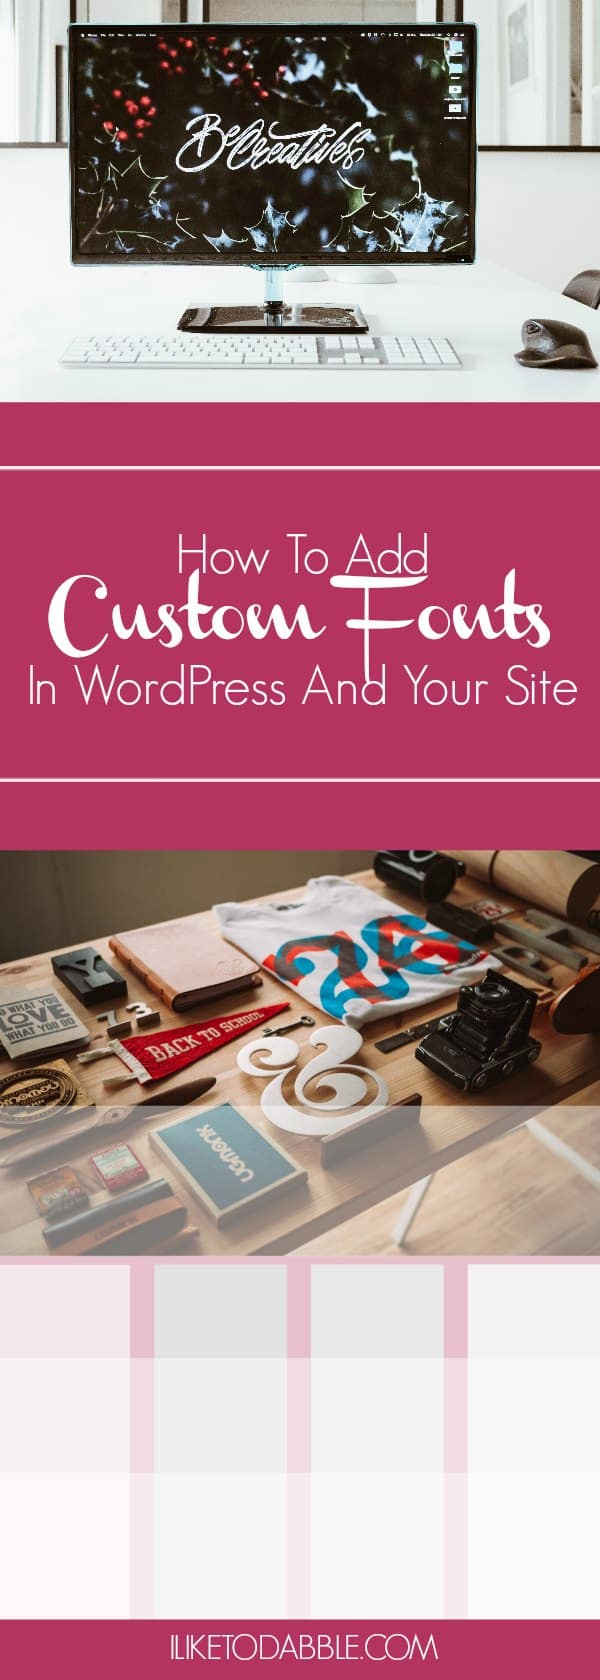 How To Add Custom Fonts In Your WordPress Site